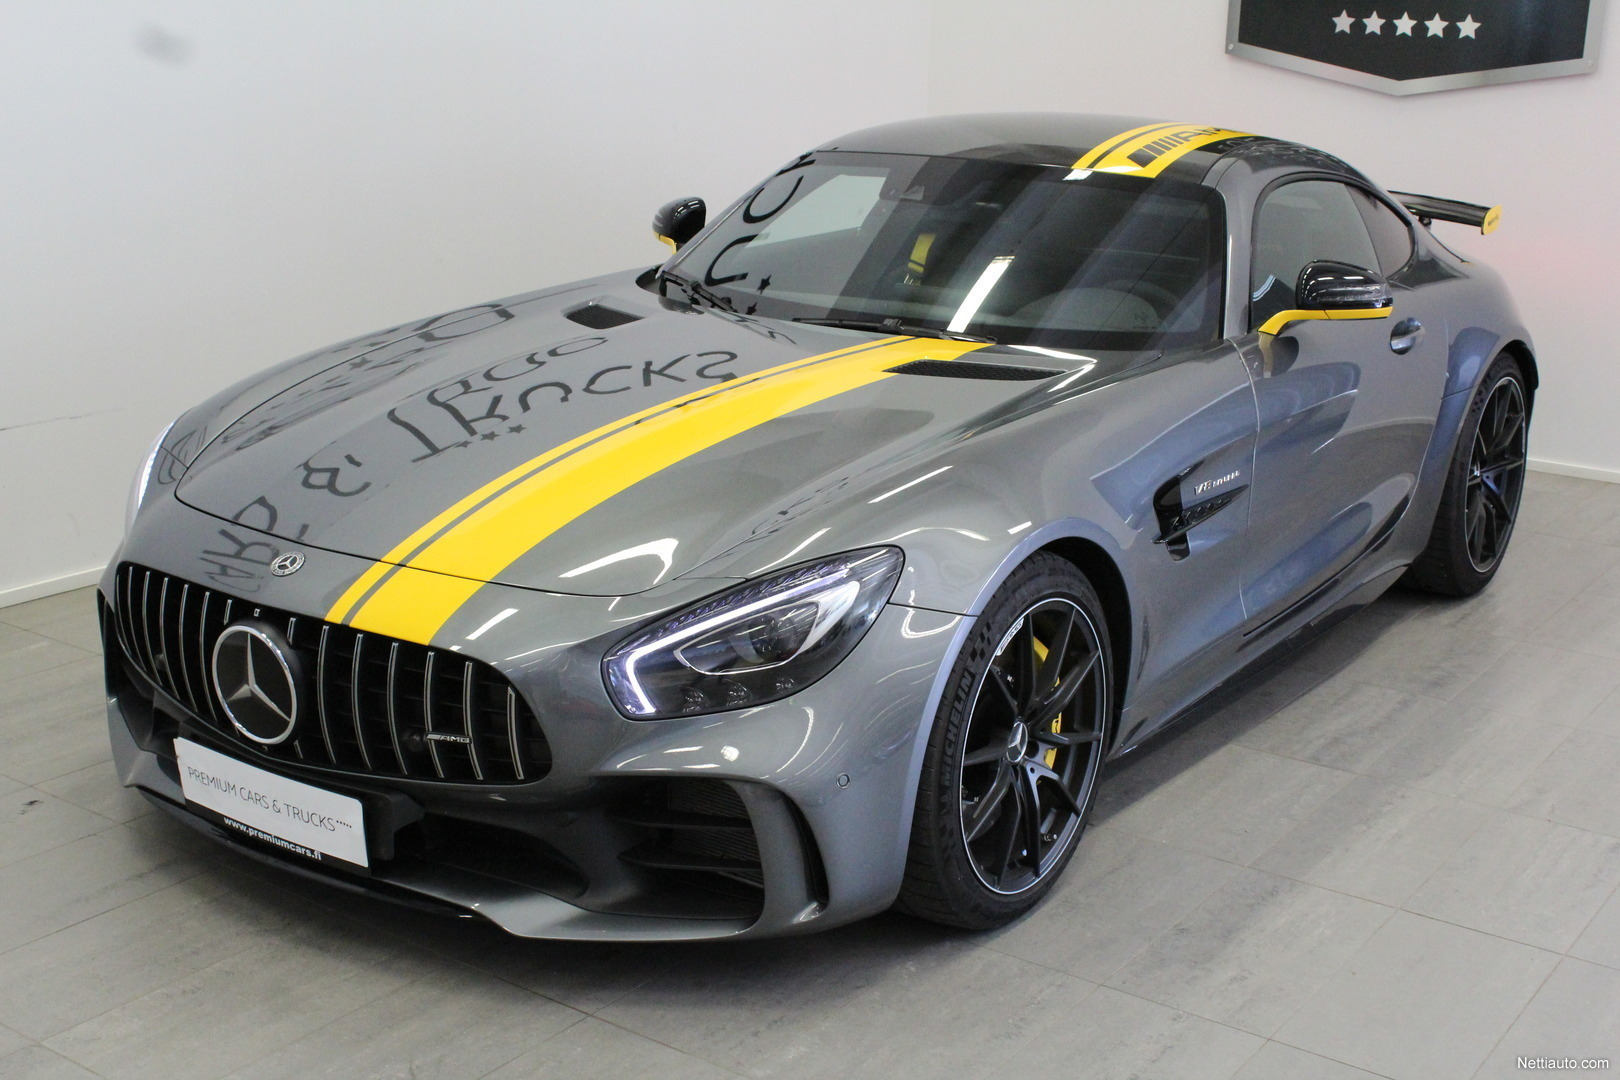 mercedes benz amg gt r amg gt r track edition coup 2018 used vehicle nettiauto. Black Bedroom Furniture Sets. Home Design Ideas